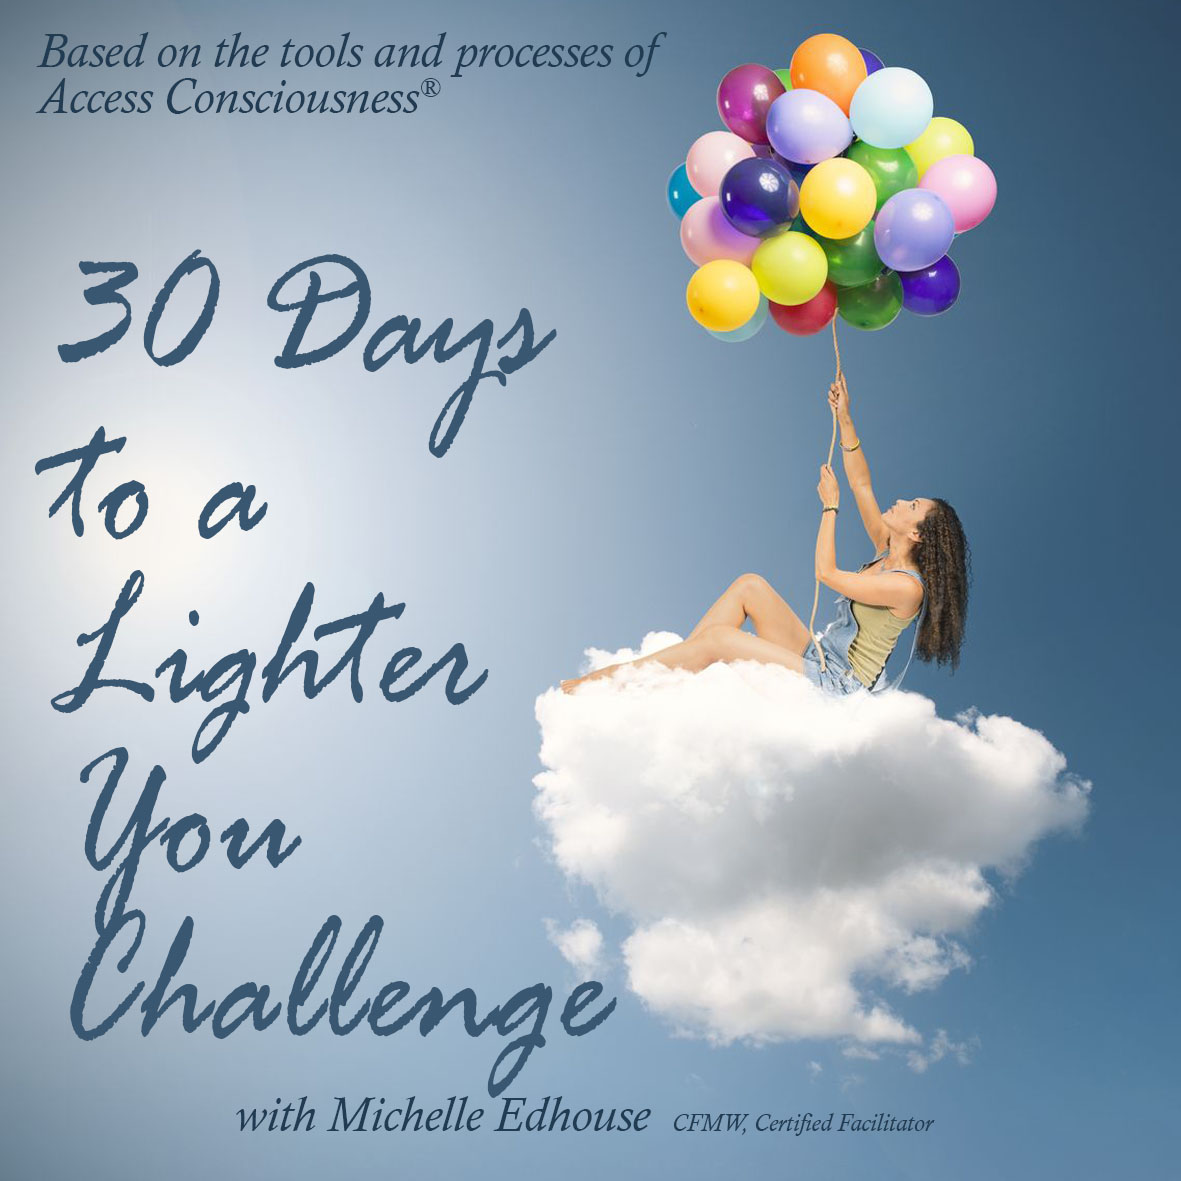 30 Days to a Lighter You Challenge